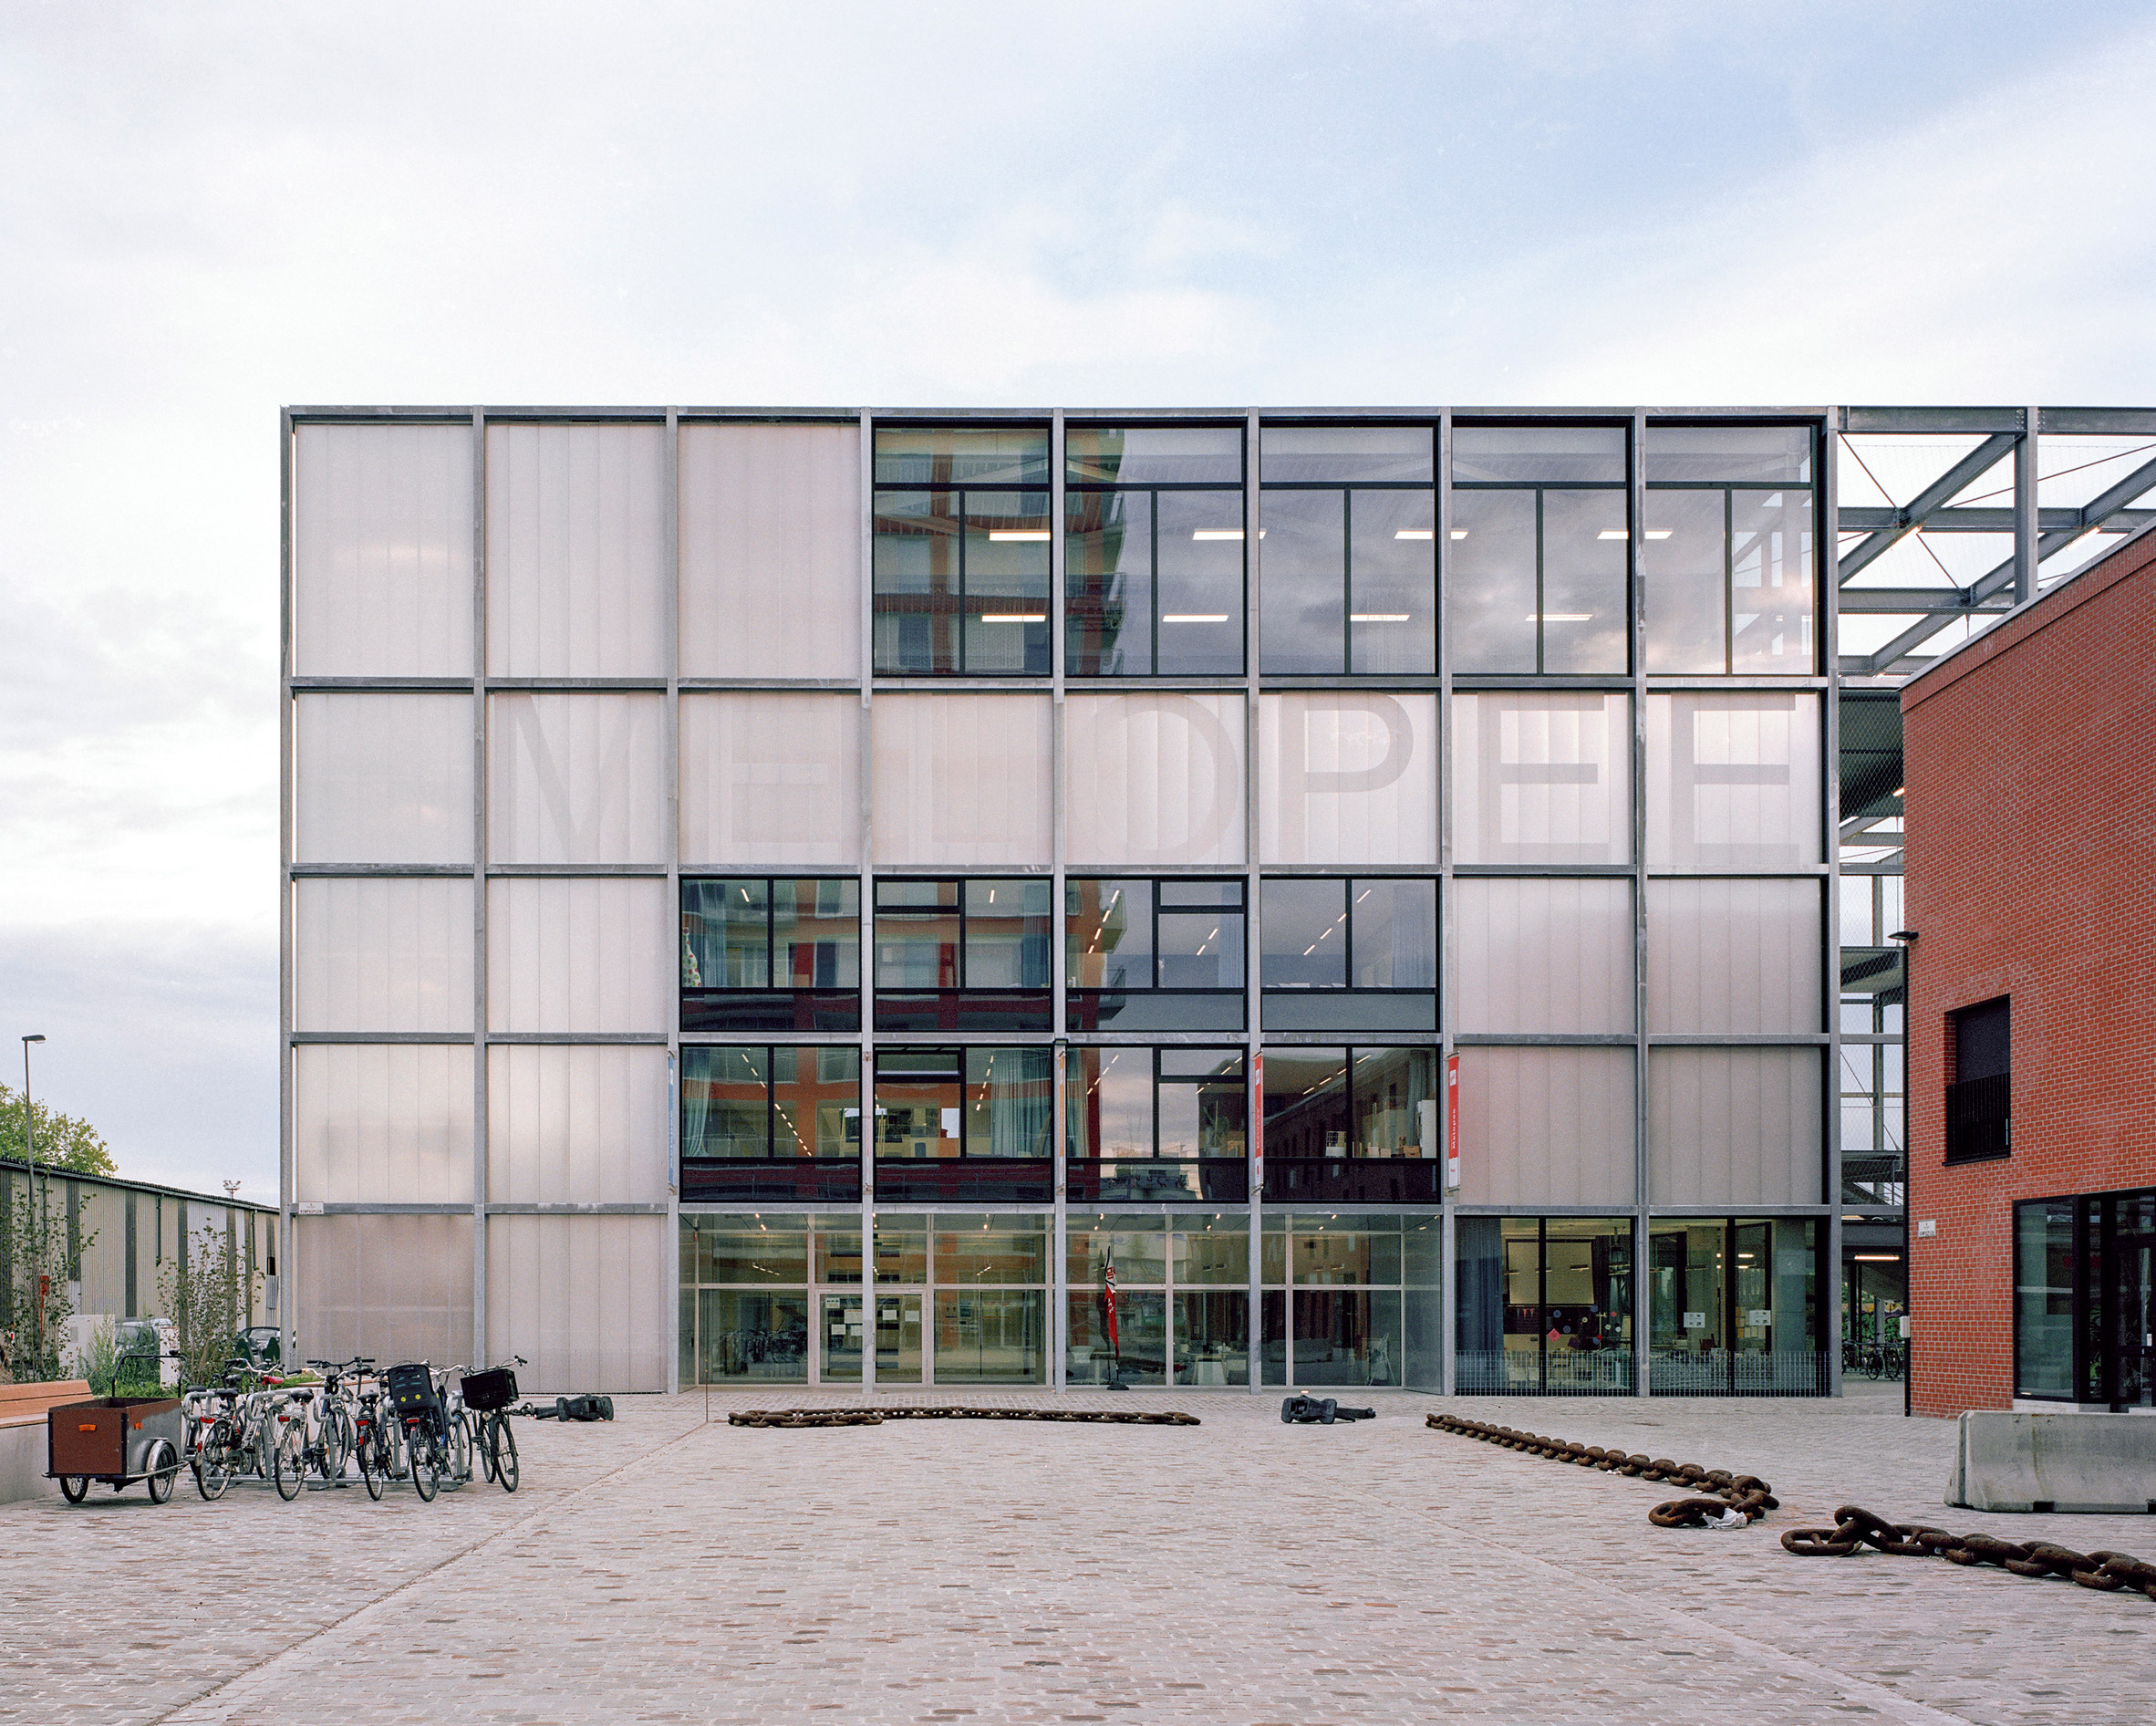 Polycarbonate walls of Melopee School in Ghent by XDGA